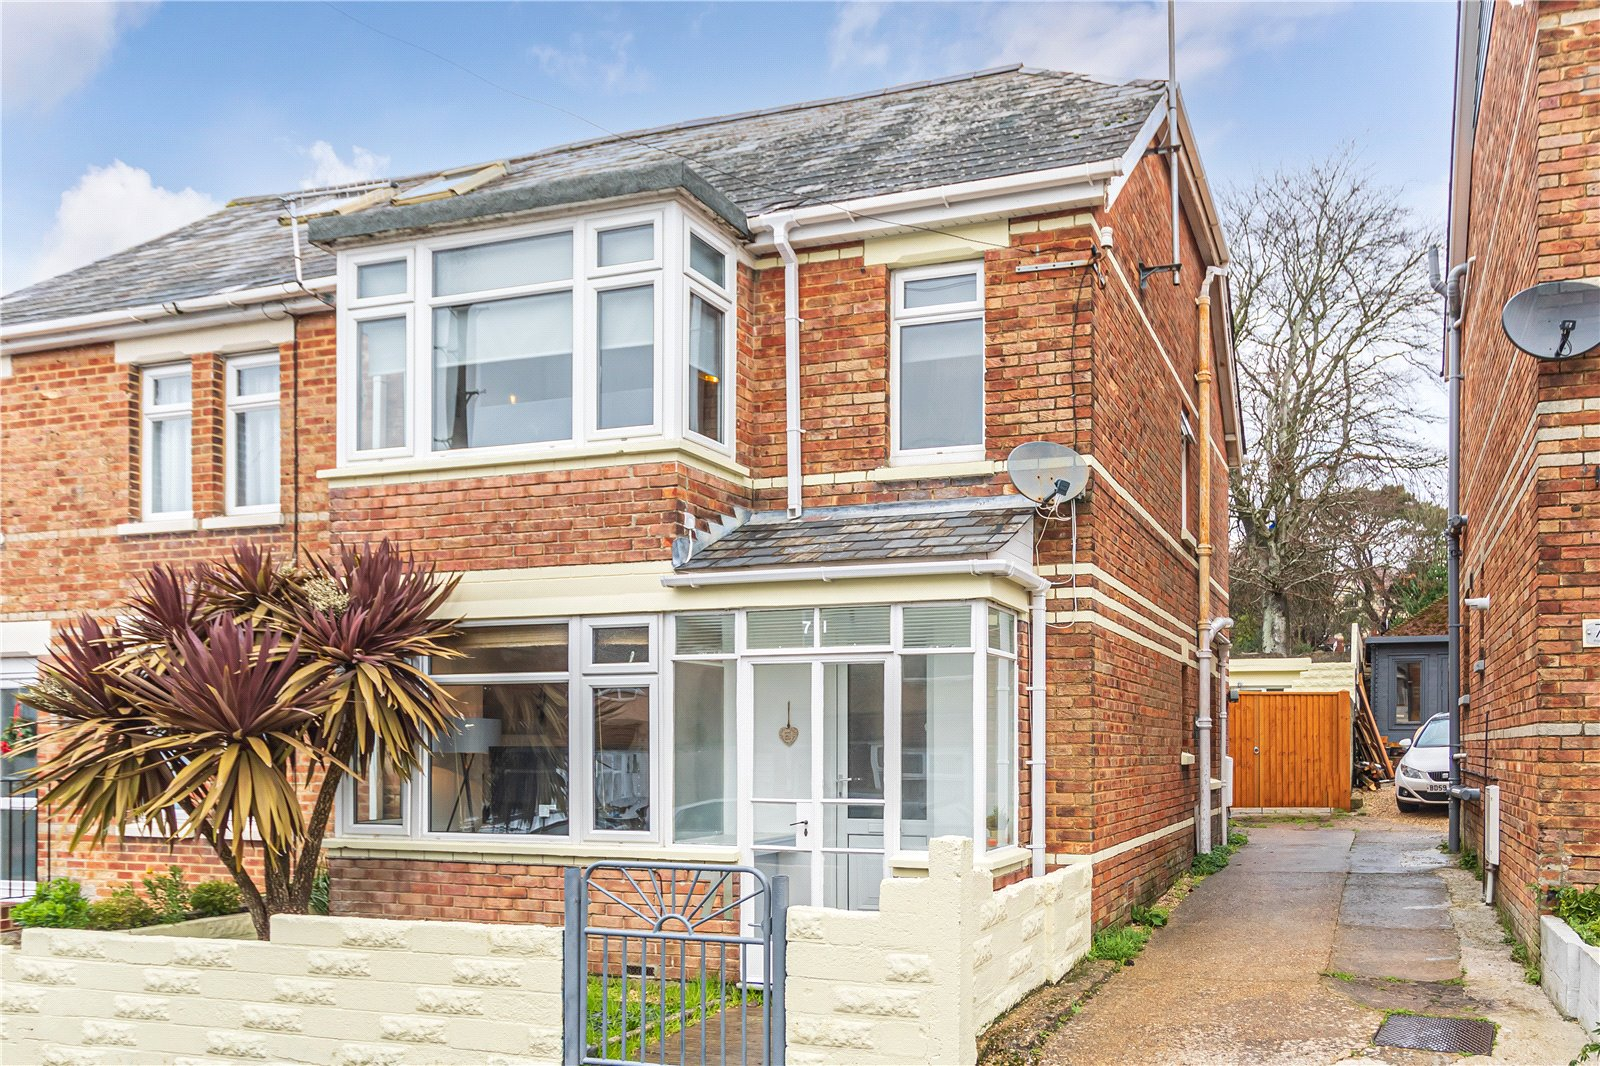 3 bed house for sale in Palmerston Road, Lower Parkstone, BH14